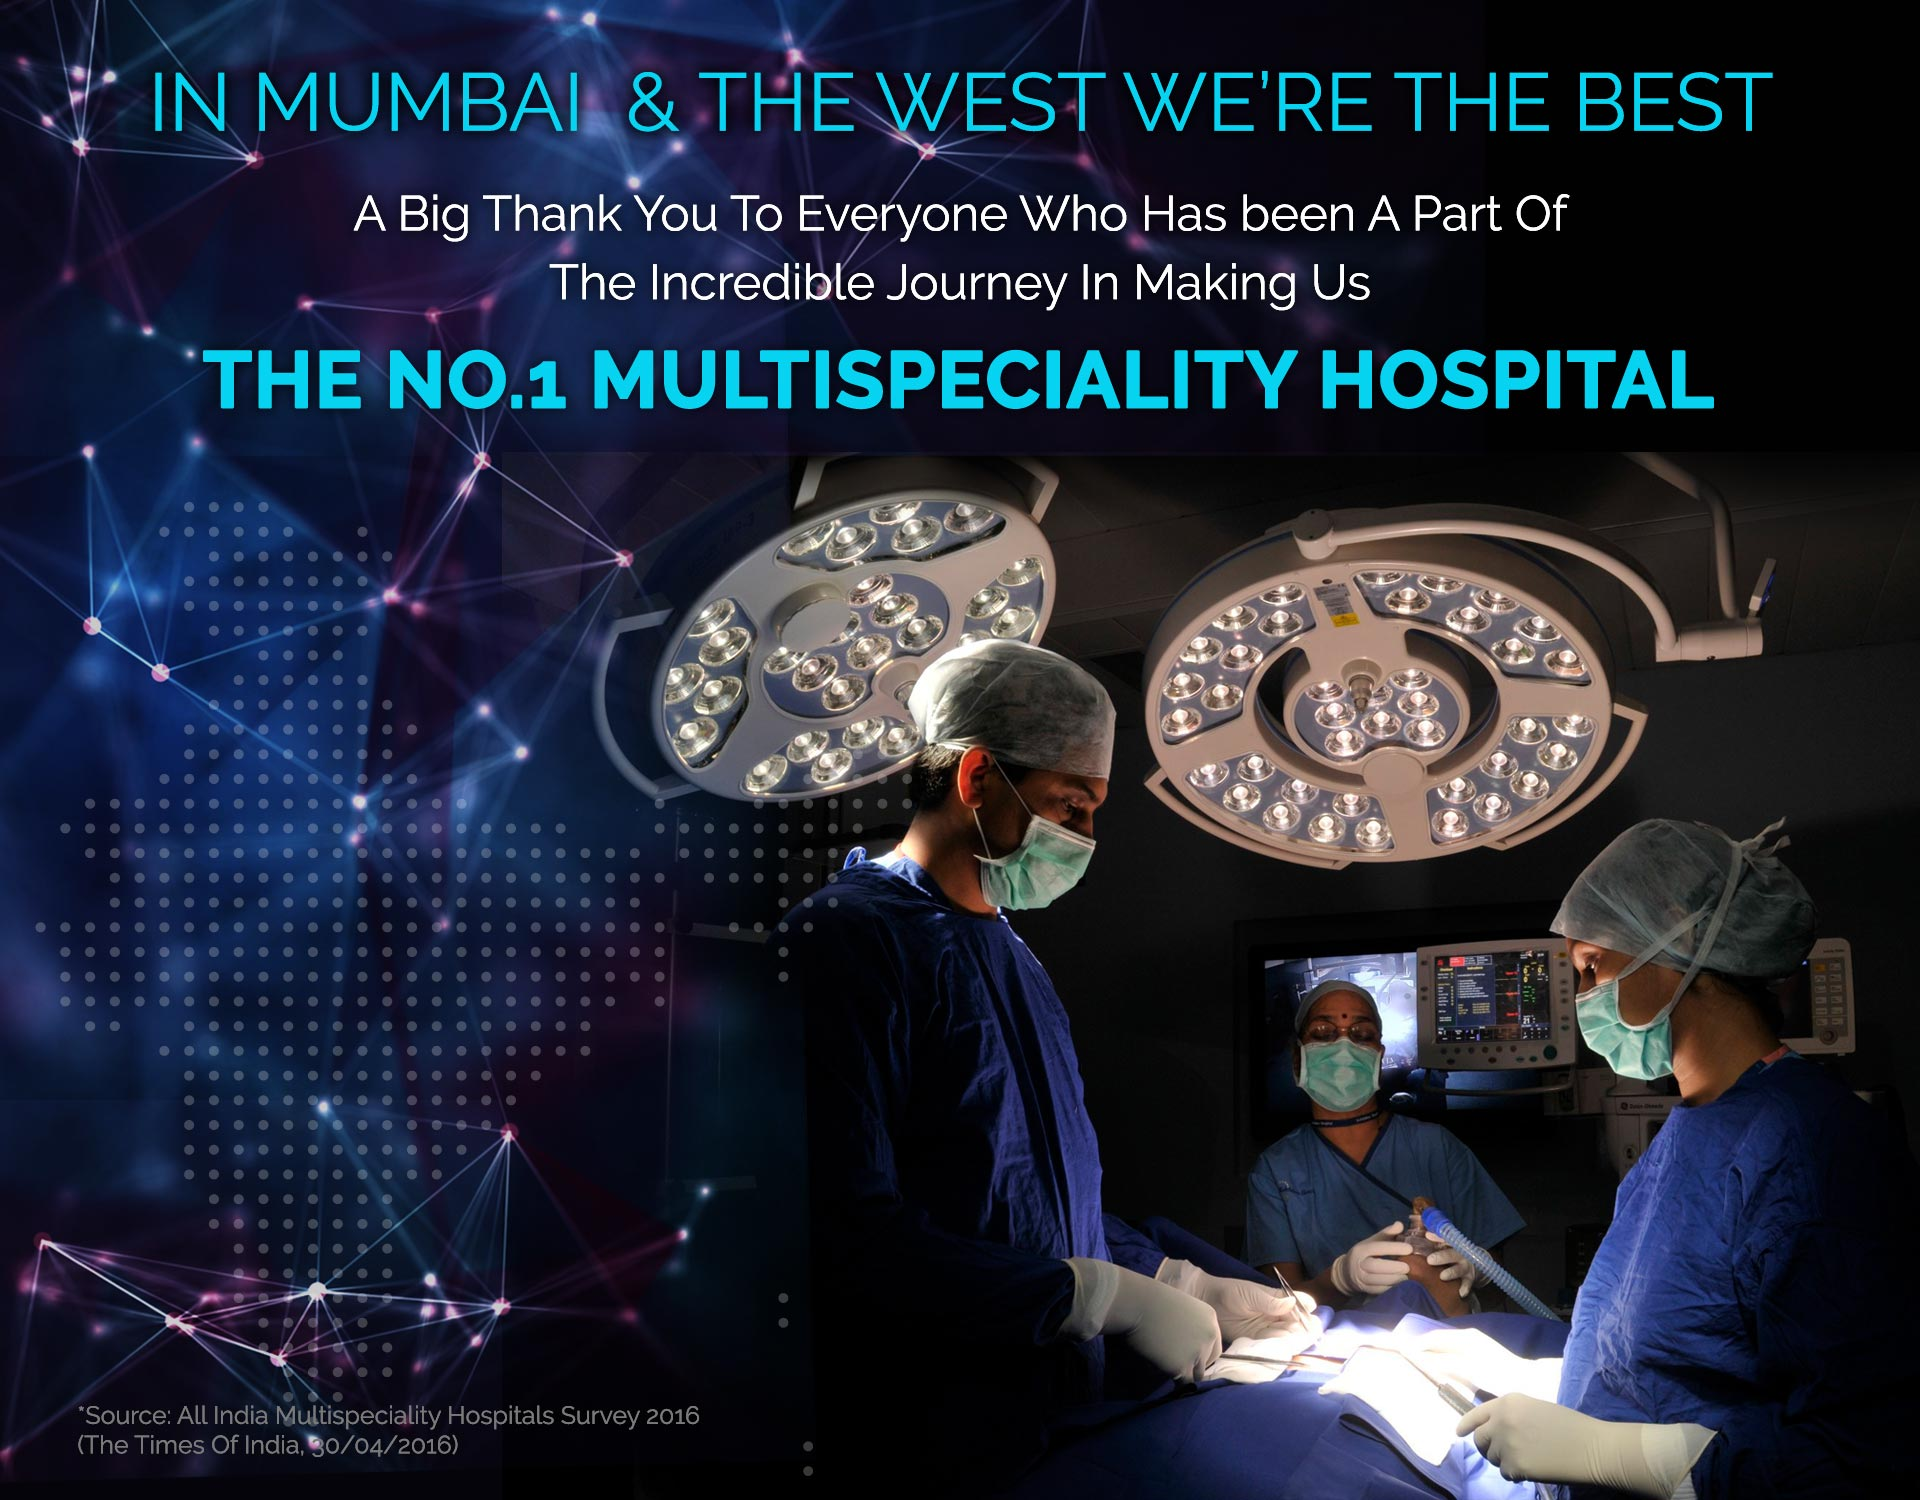 The No.1 Multispeciality Hospital